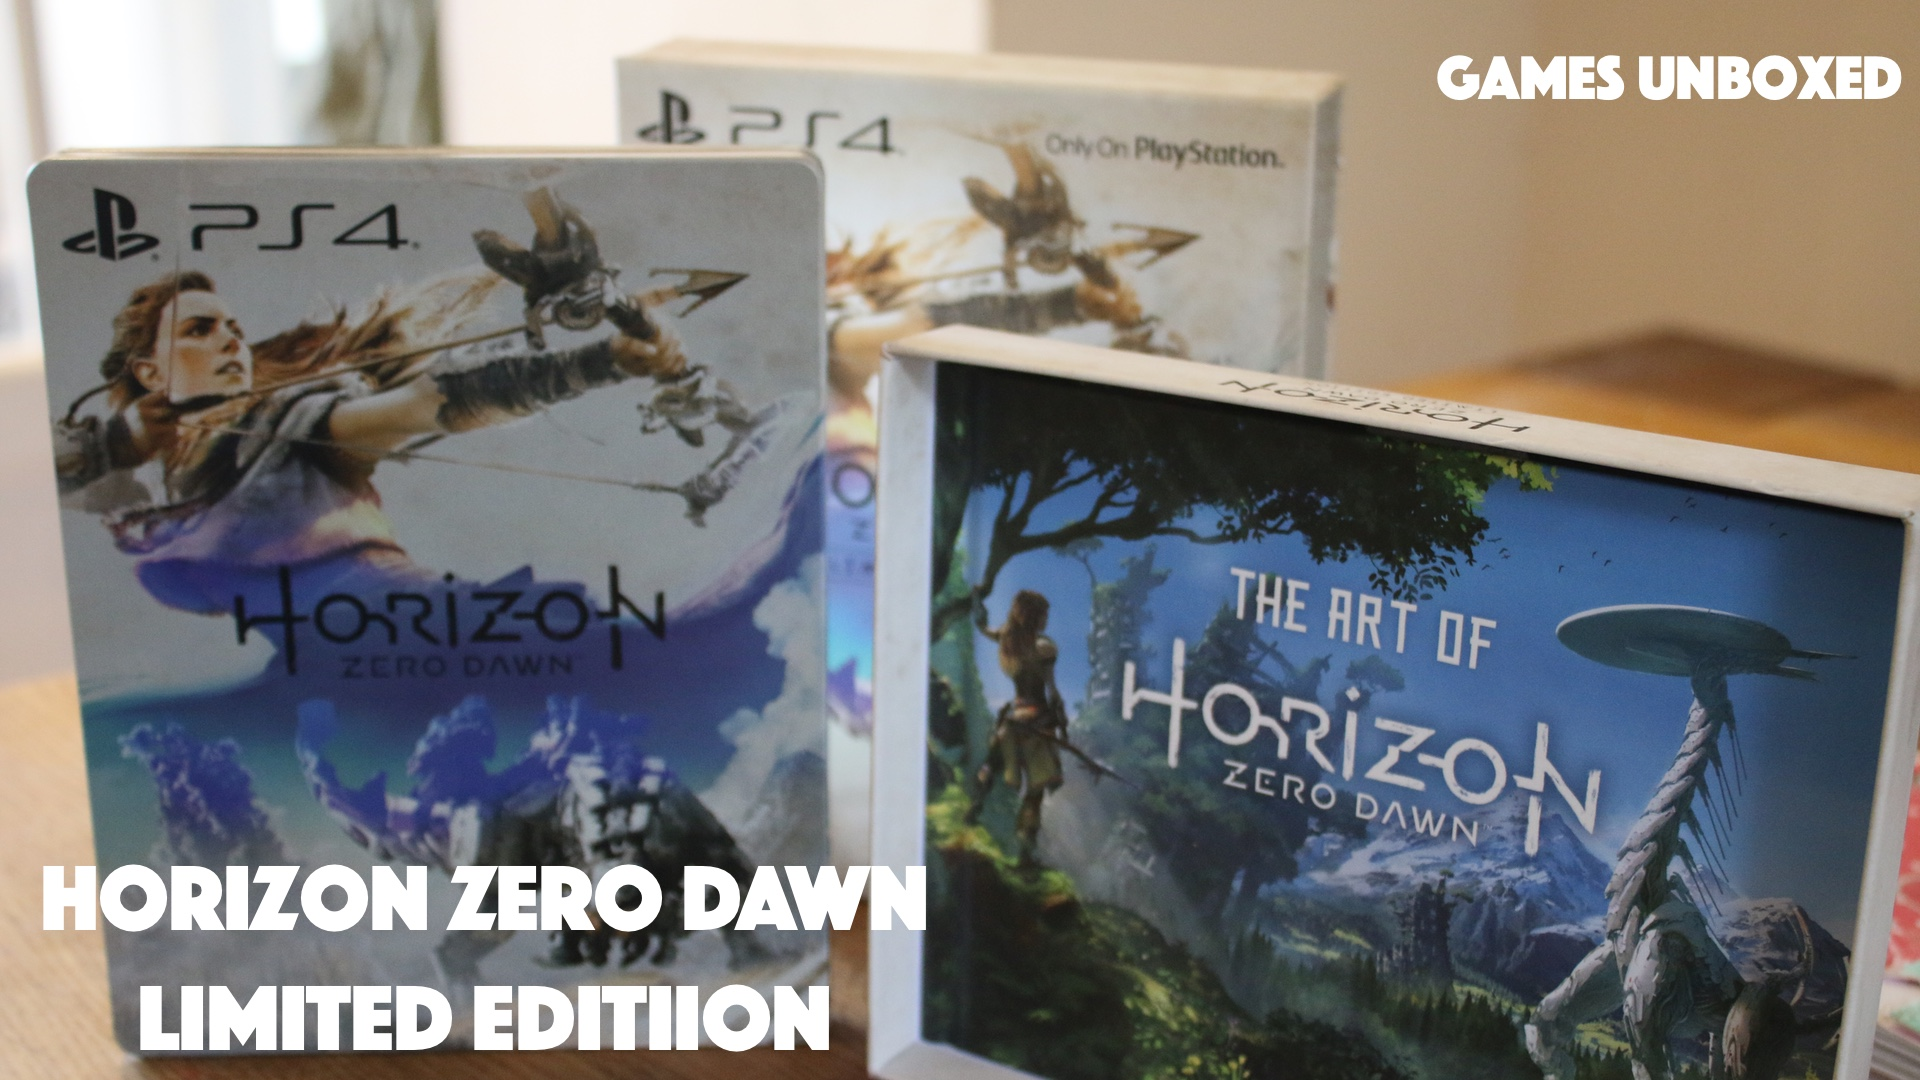 Horizon Zero Dawn Limited Edition | Games Unboxed